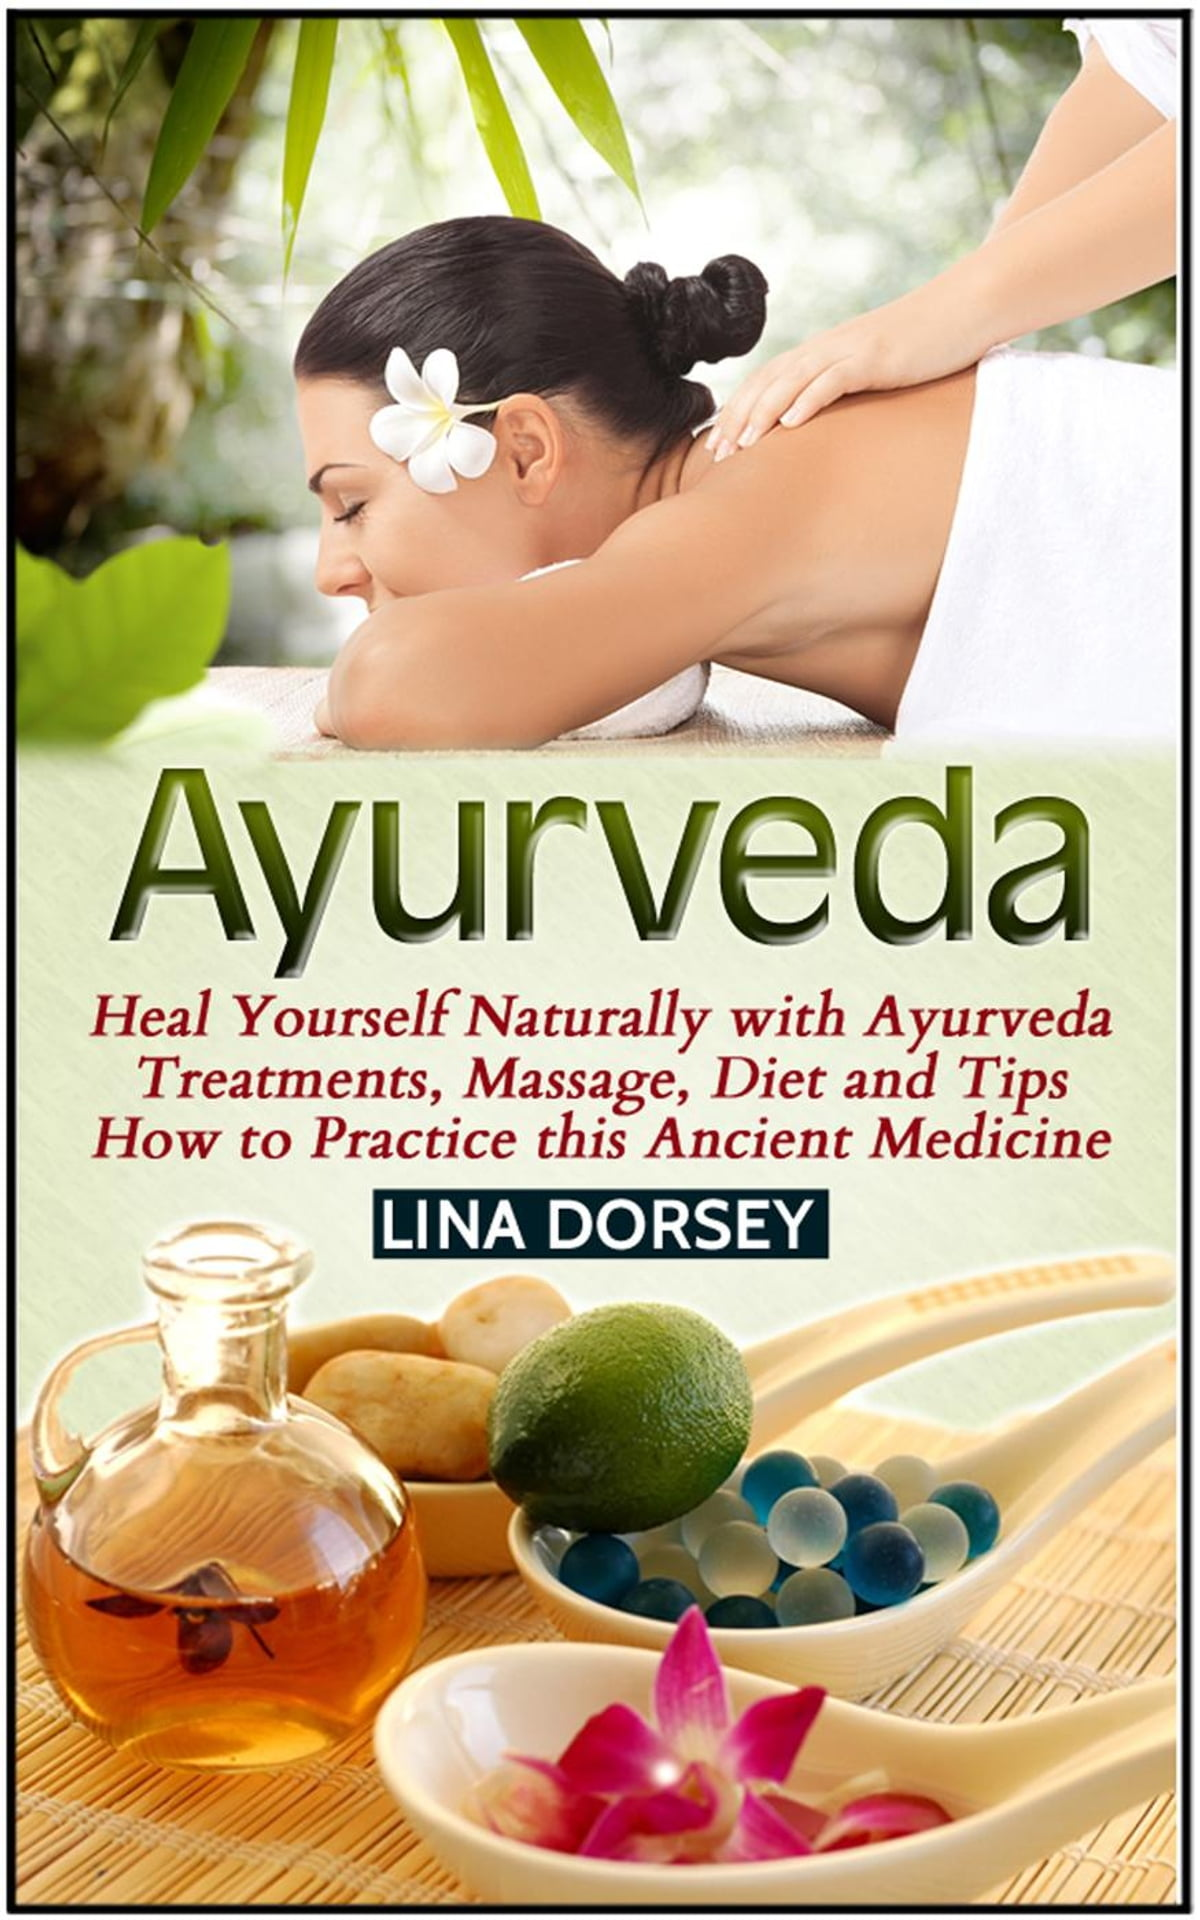 ayurveda beginners guide essential ayurvedic principles and practices to balance and heal naturally